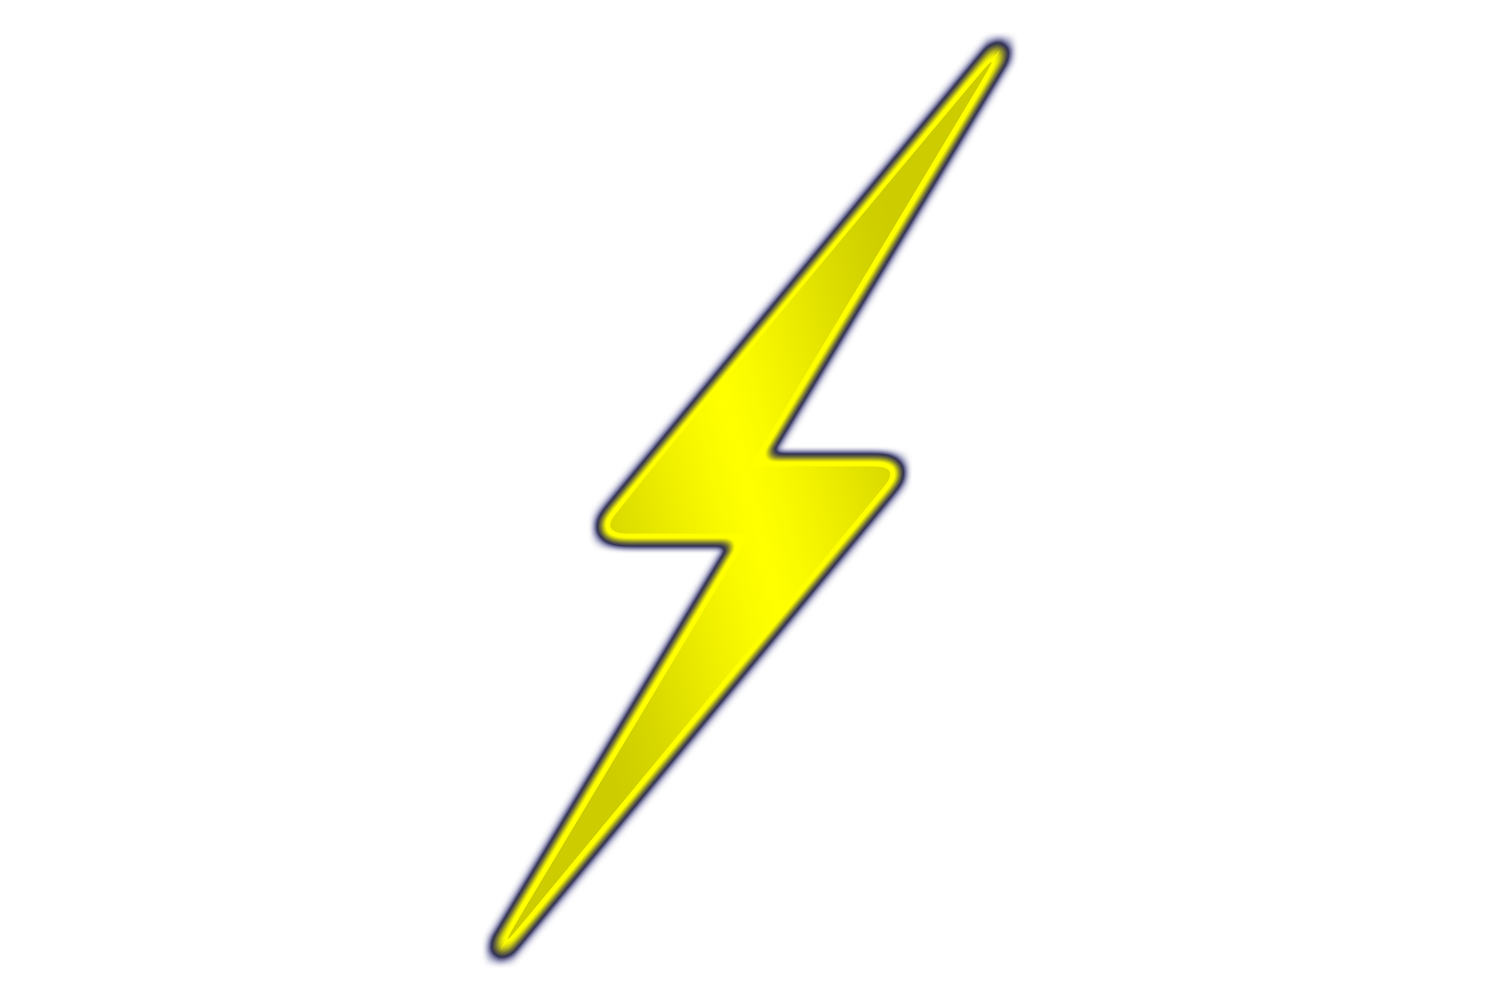 Lightning bolt electric bolt clip art 3 clipartcow 4.